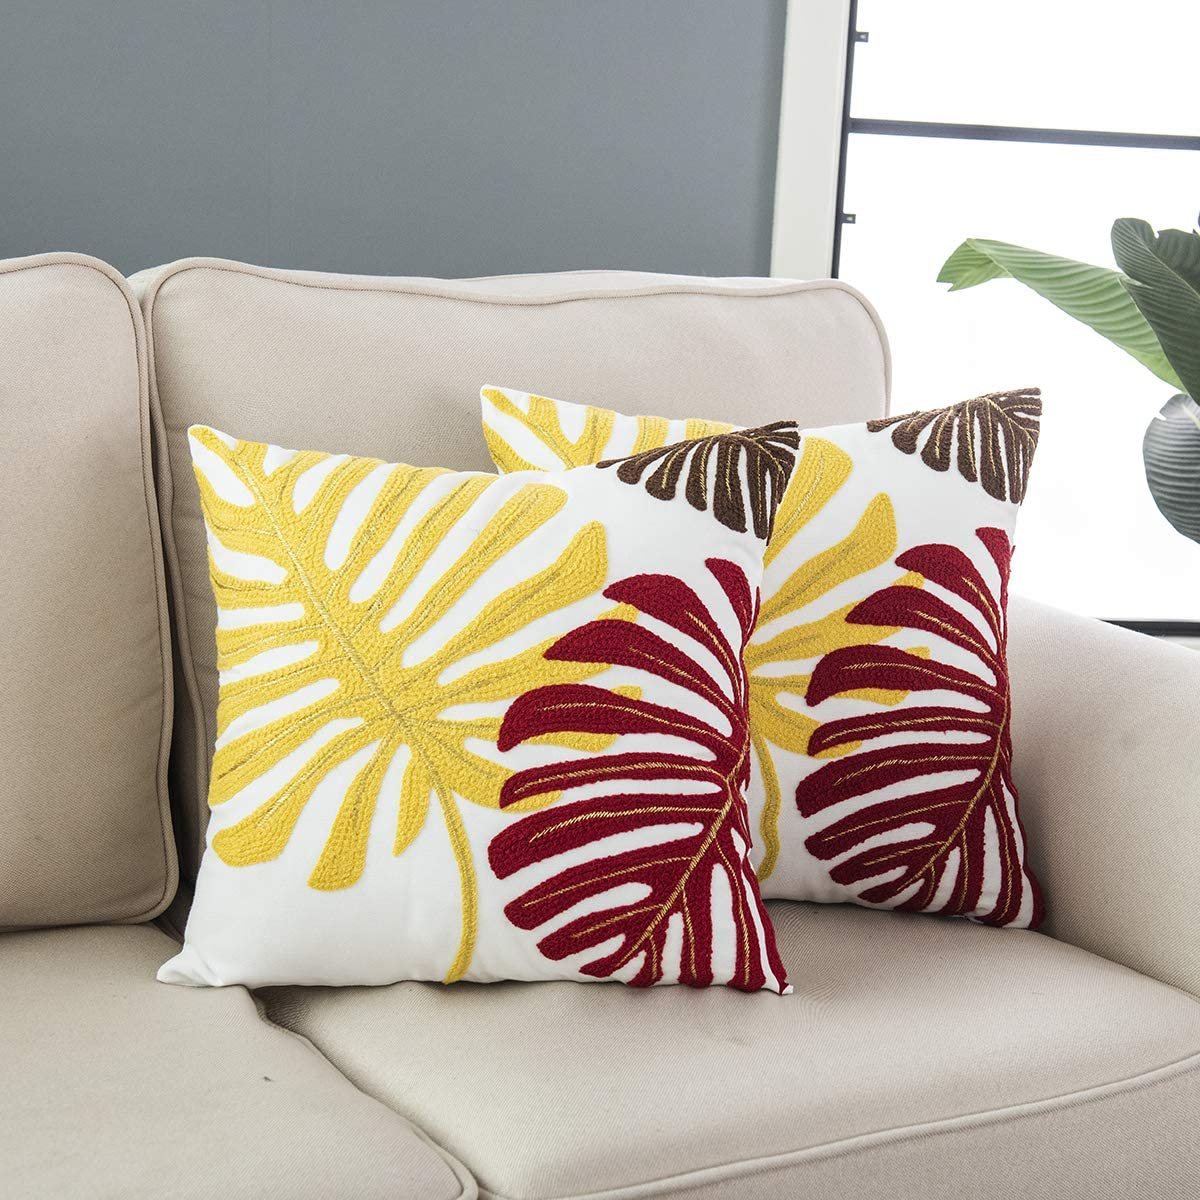 Taisier Home 2 Embroidered Tropical Leaf Pattern Throw Pillow Covers Decorative Pillowcase 18X18 Inches,Multicoloured